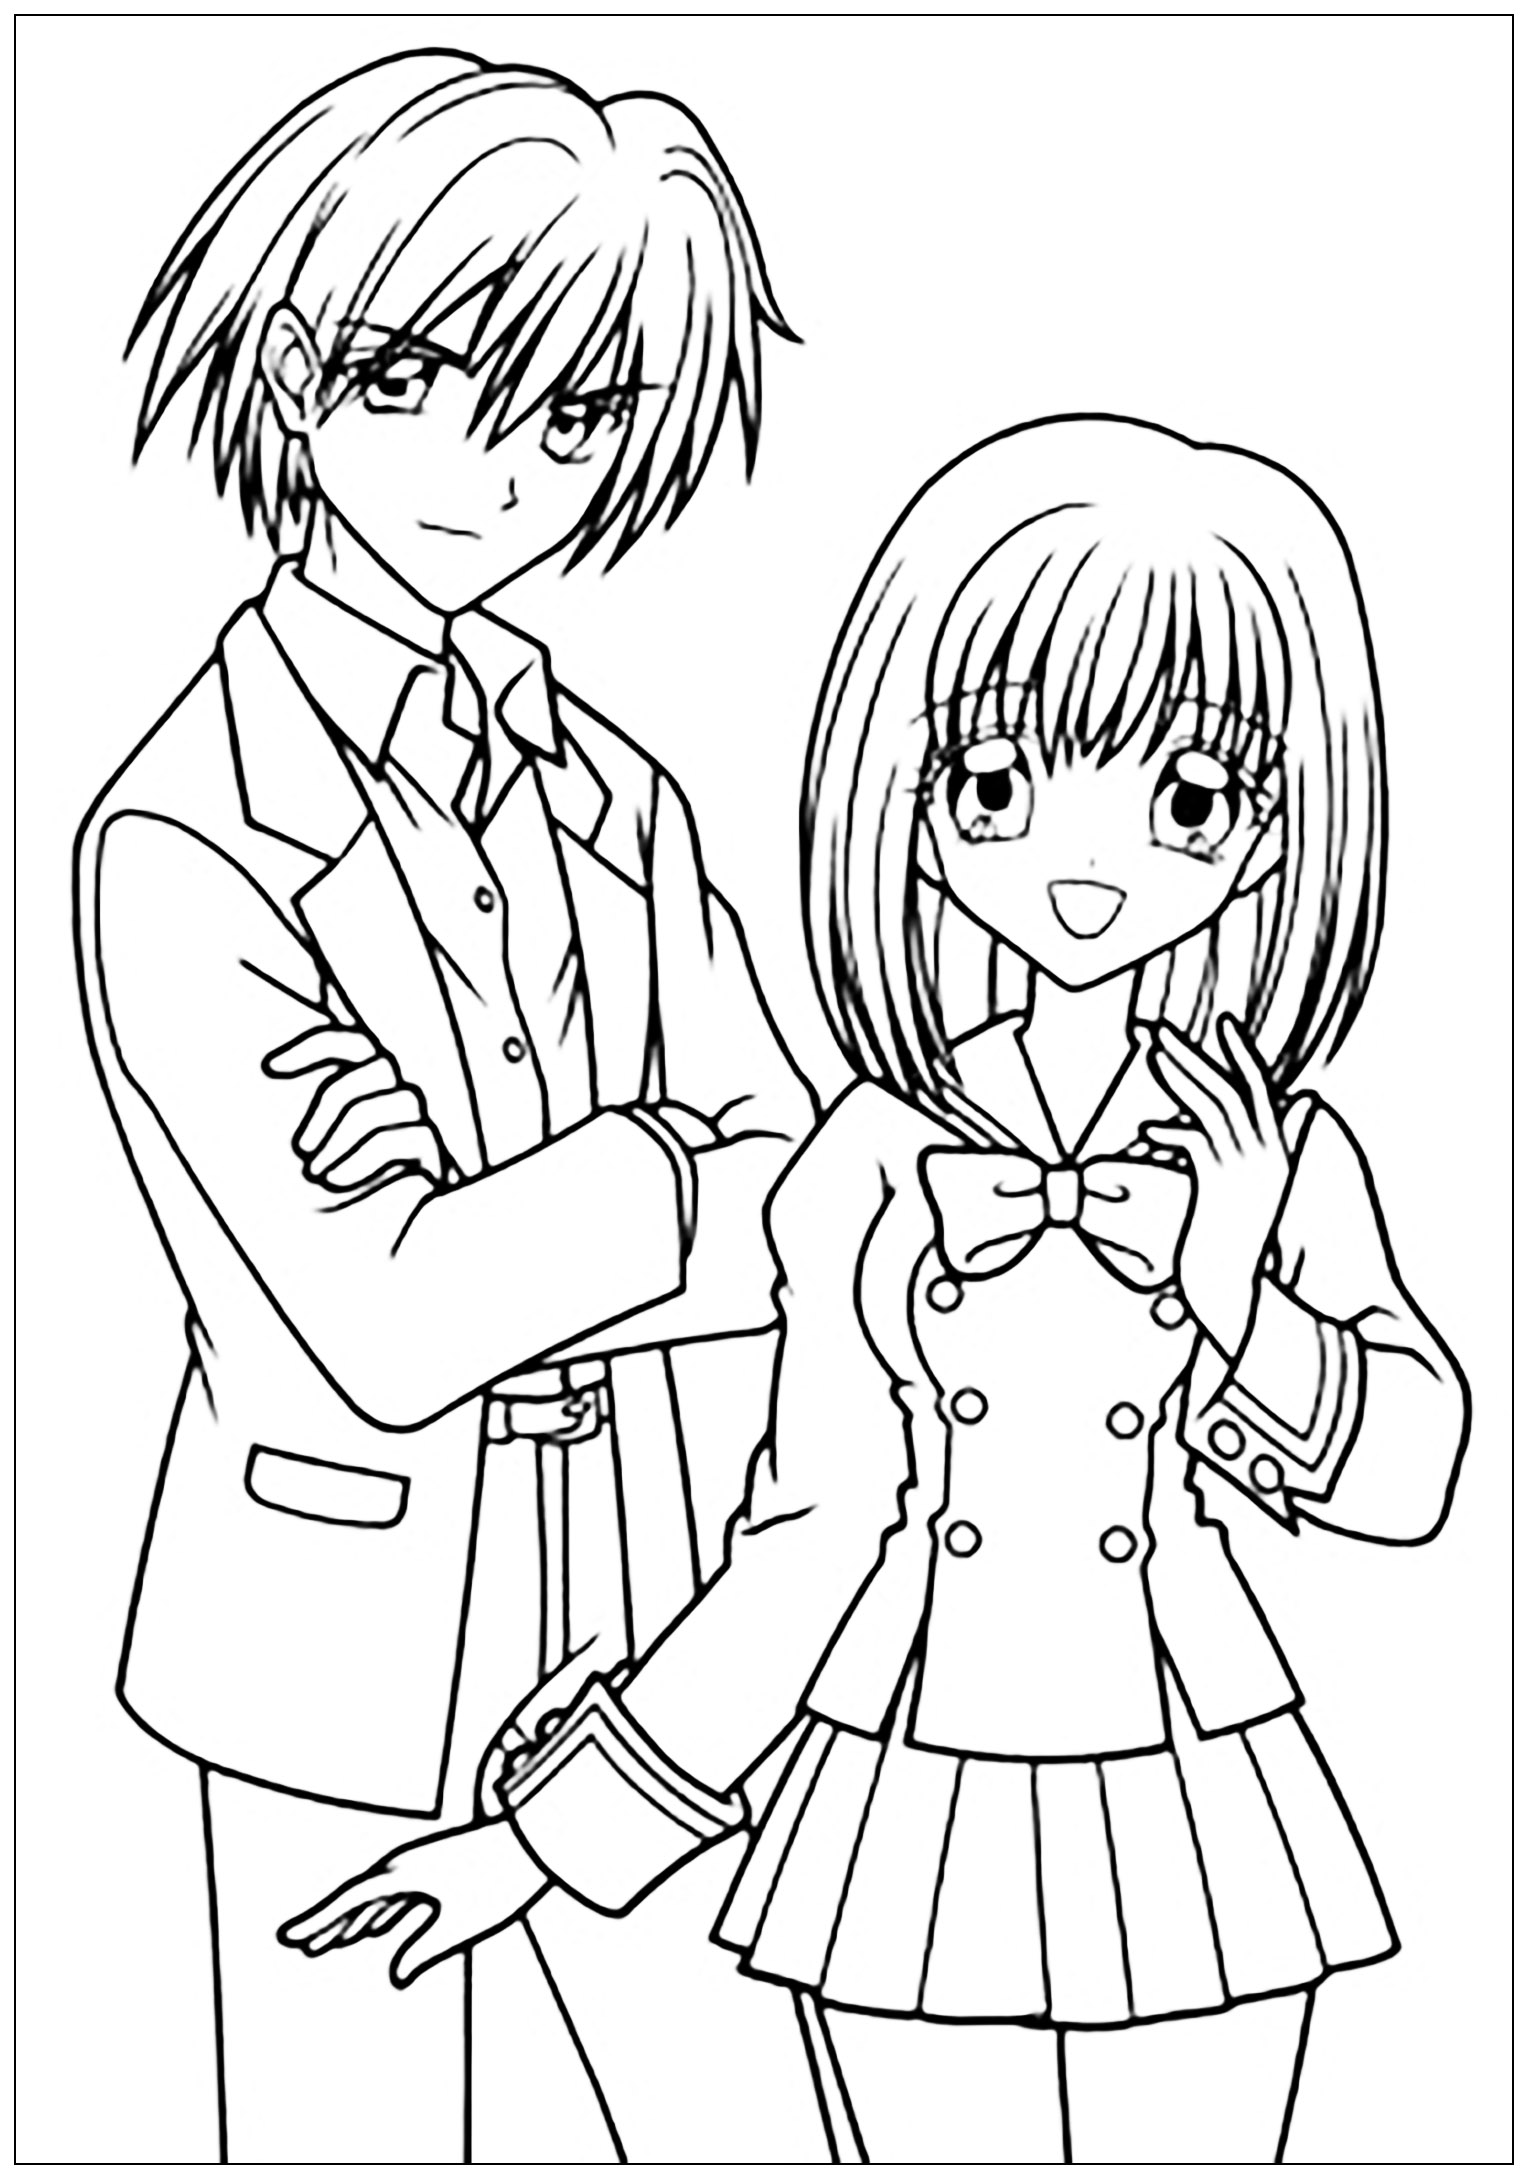 Manga To Color For Kids Manga Kids Coloring Pages